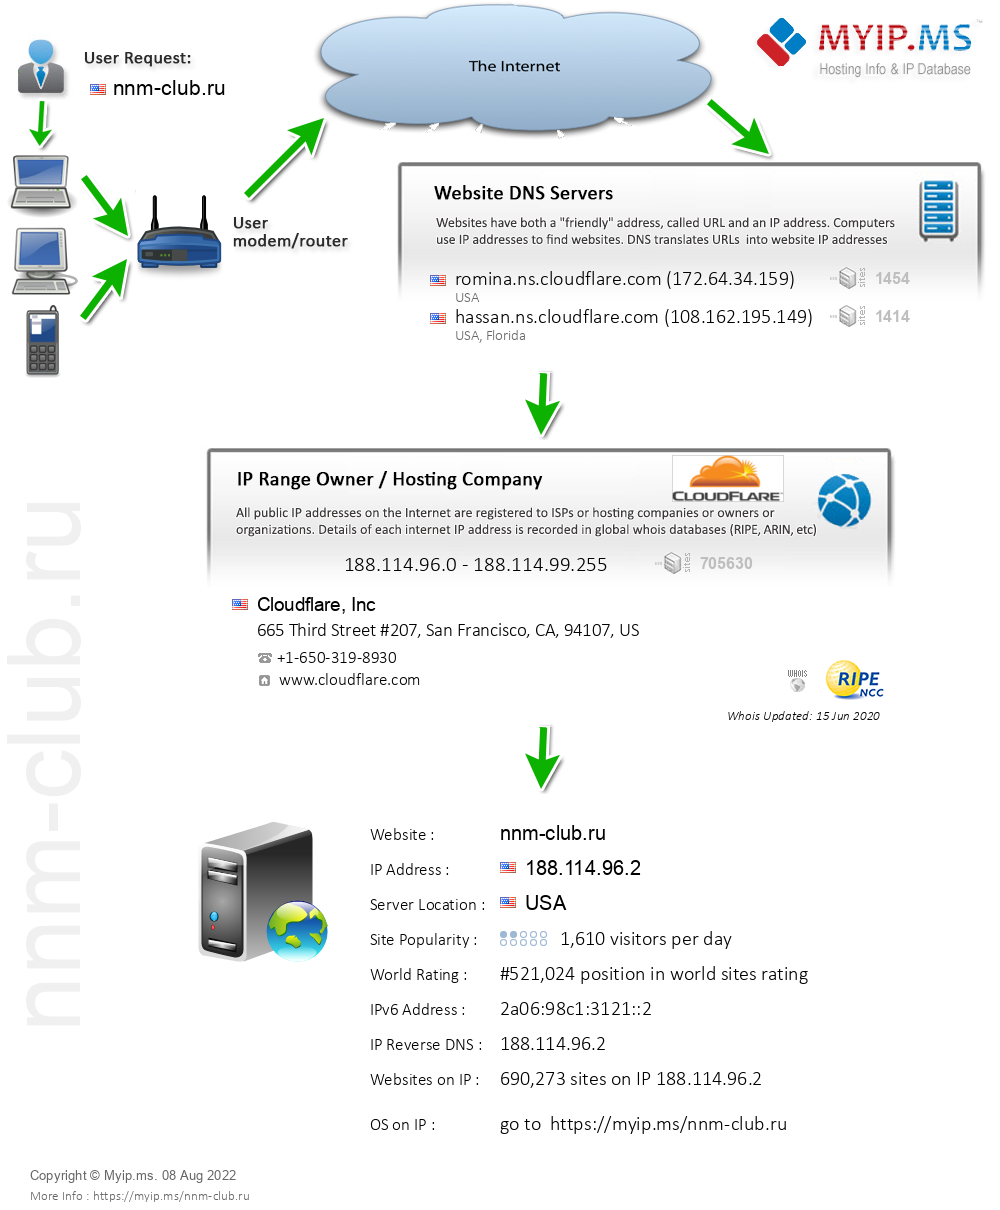 Nnm-club.ru - Website Hosting Visual IP Diagram